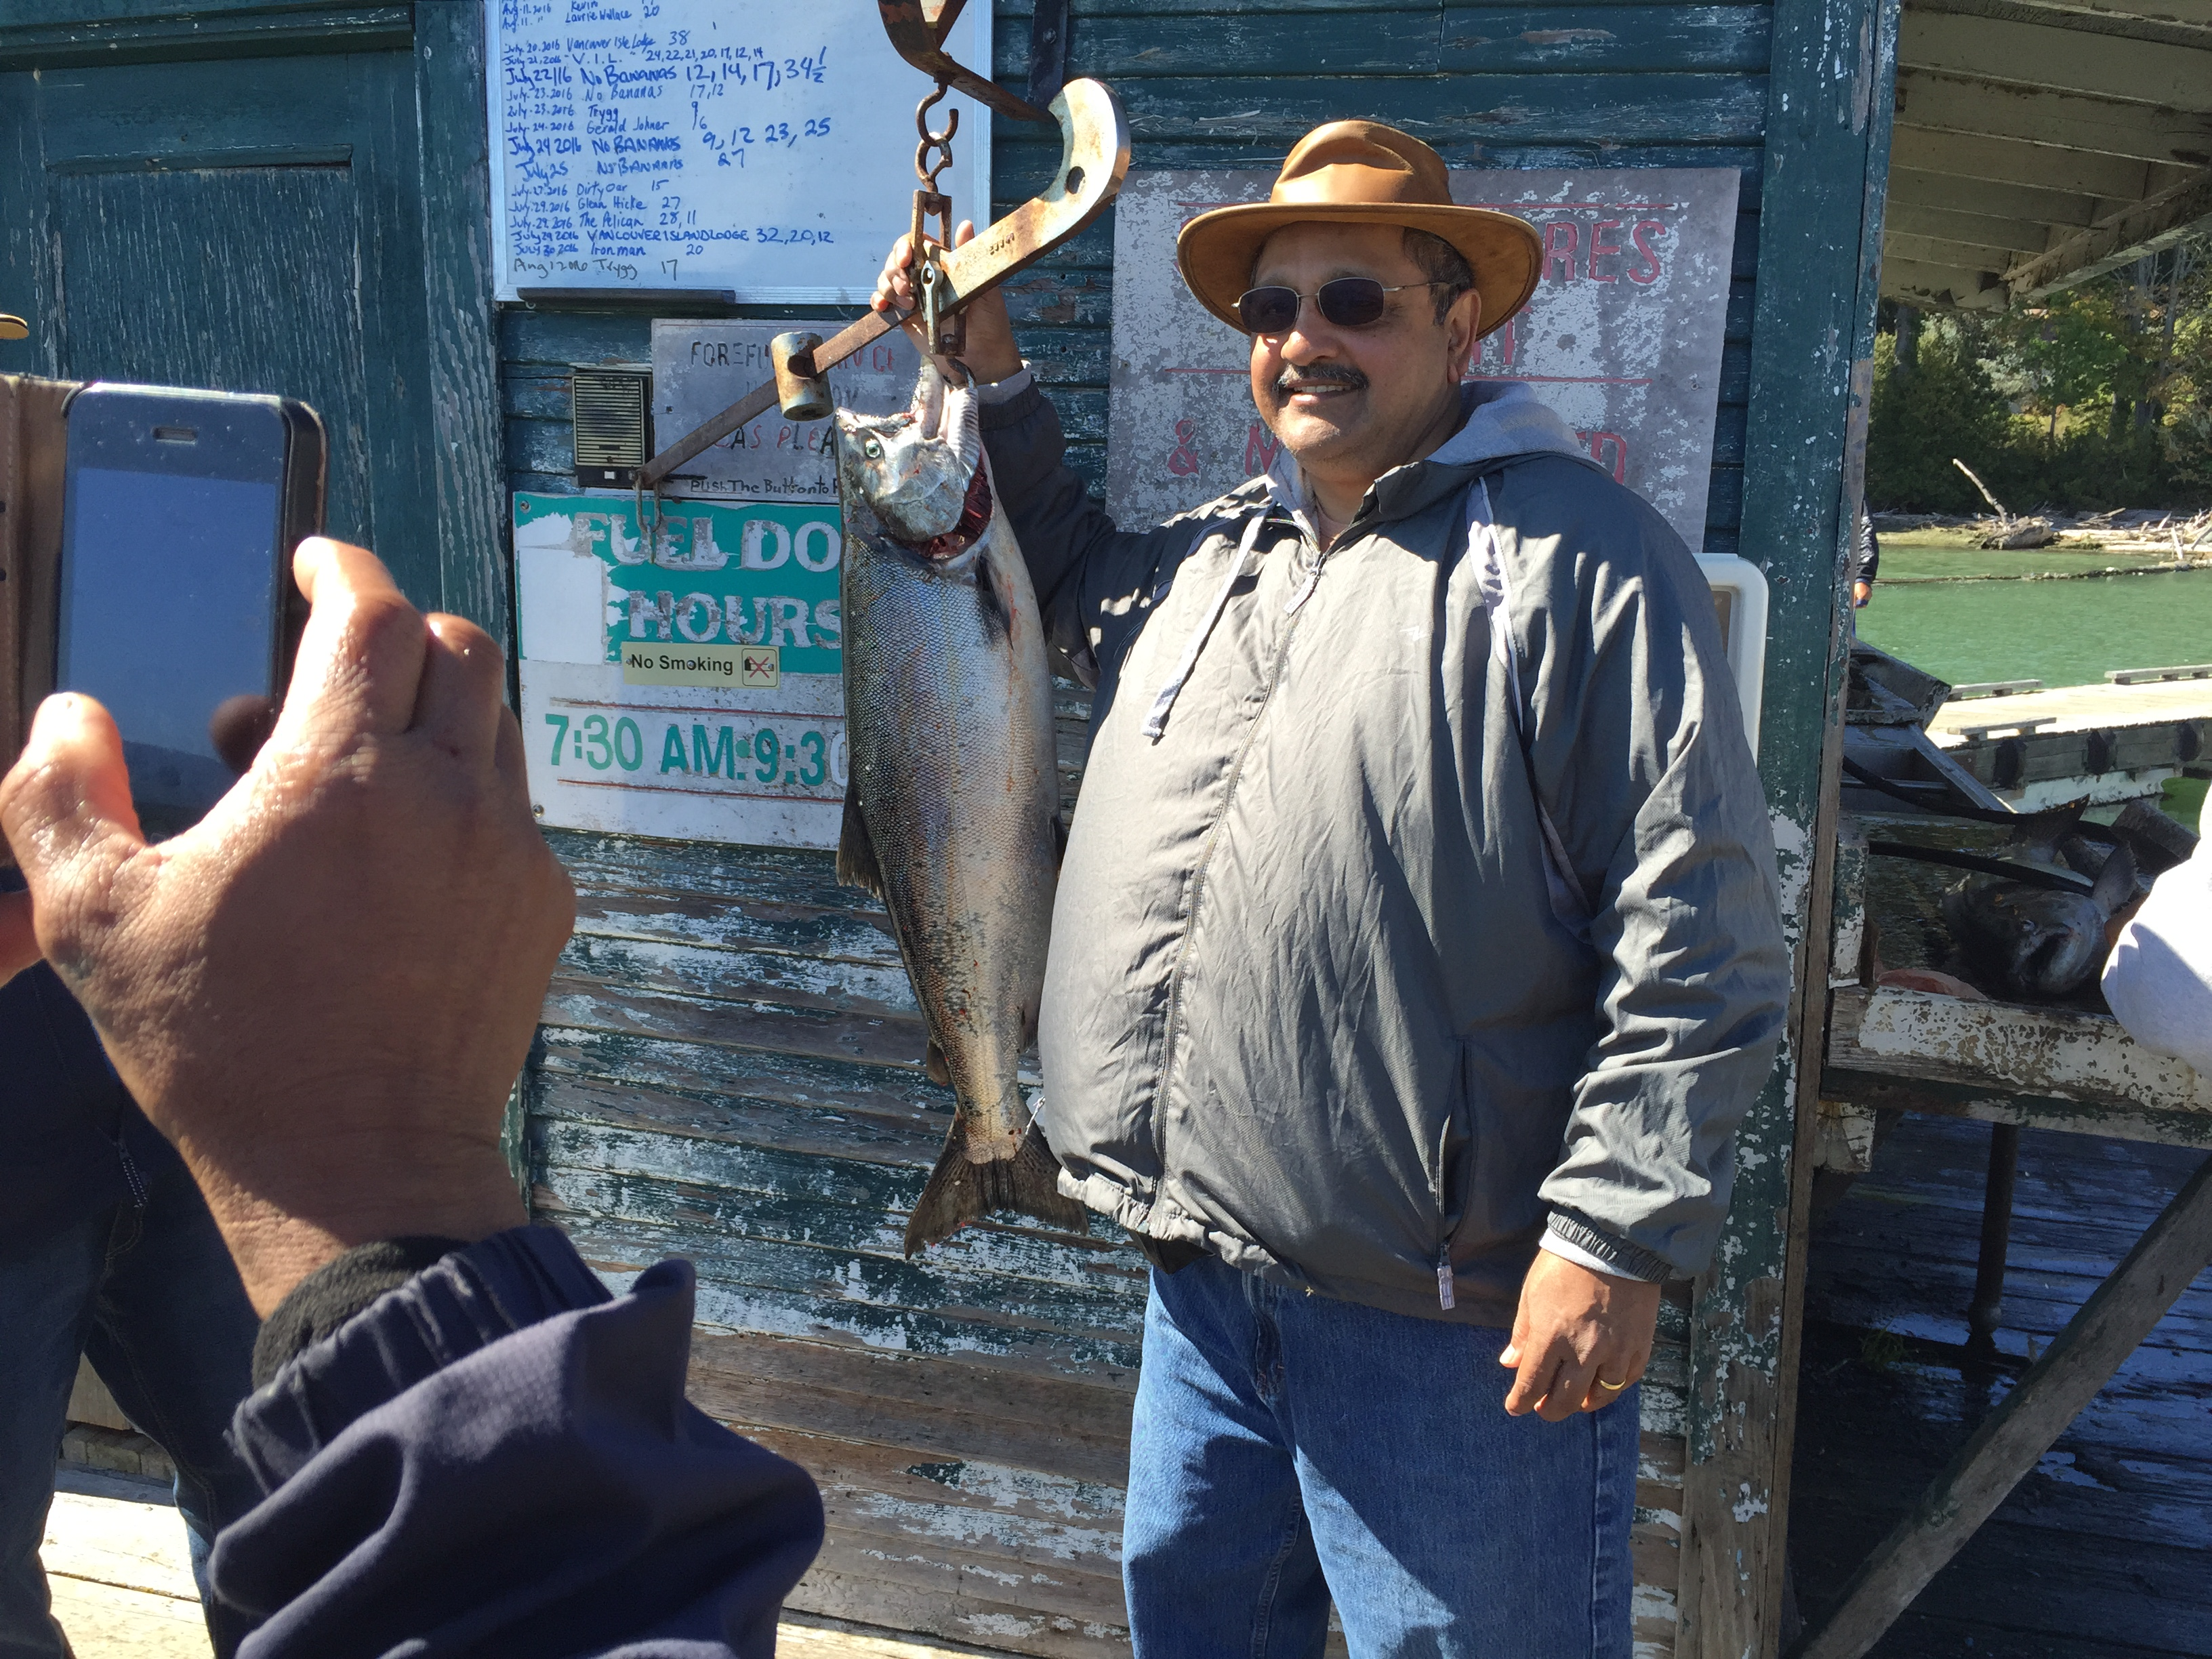 Sooke fishing Charters